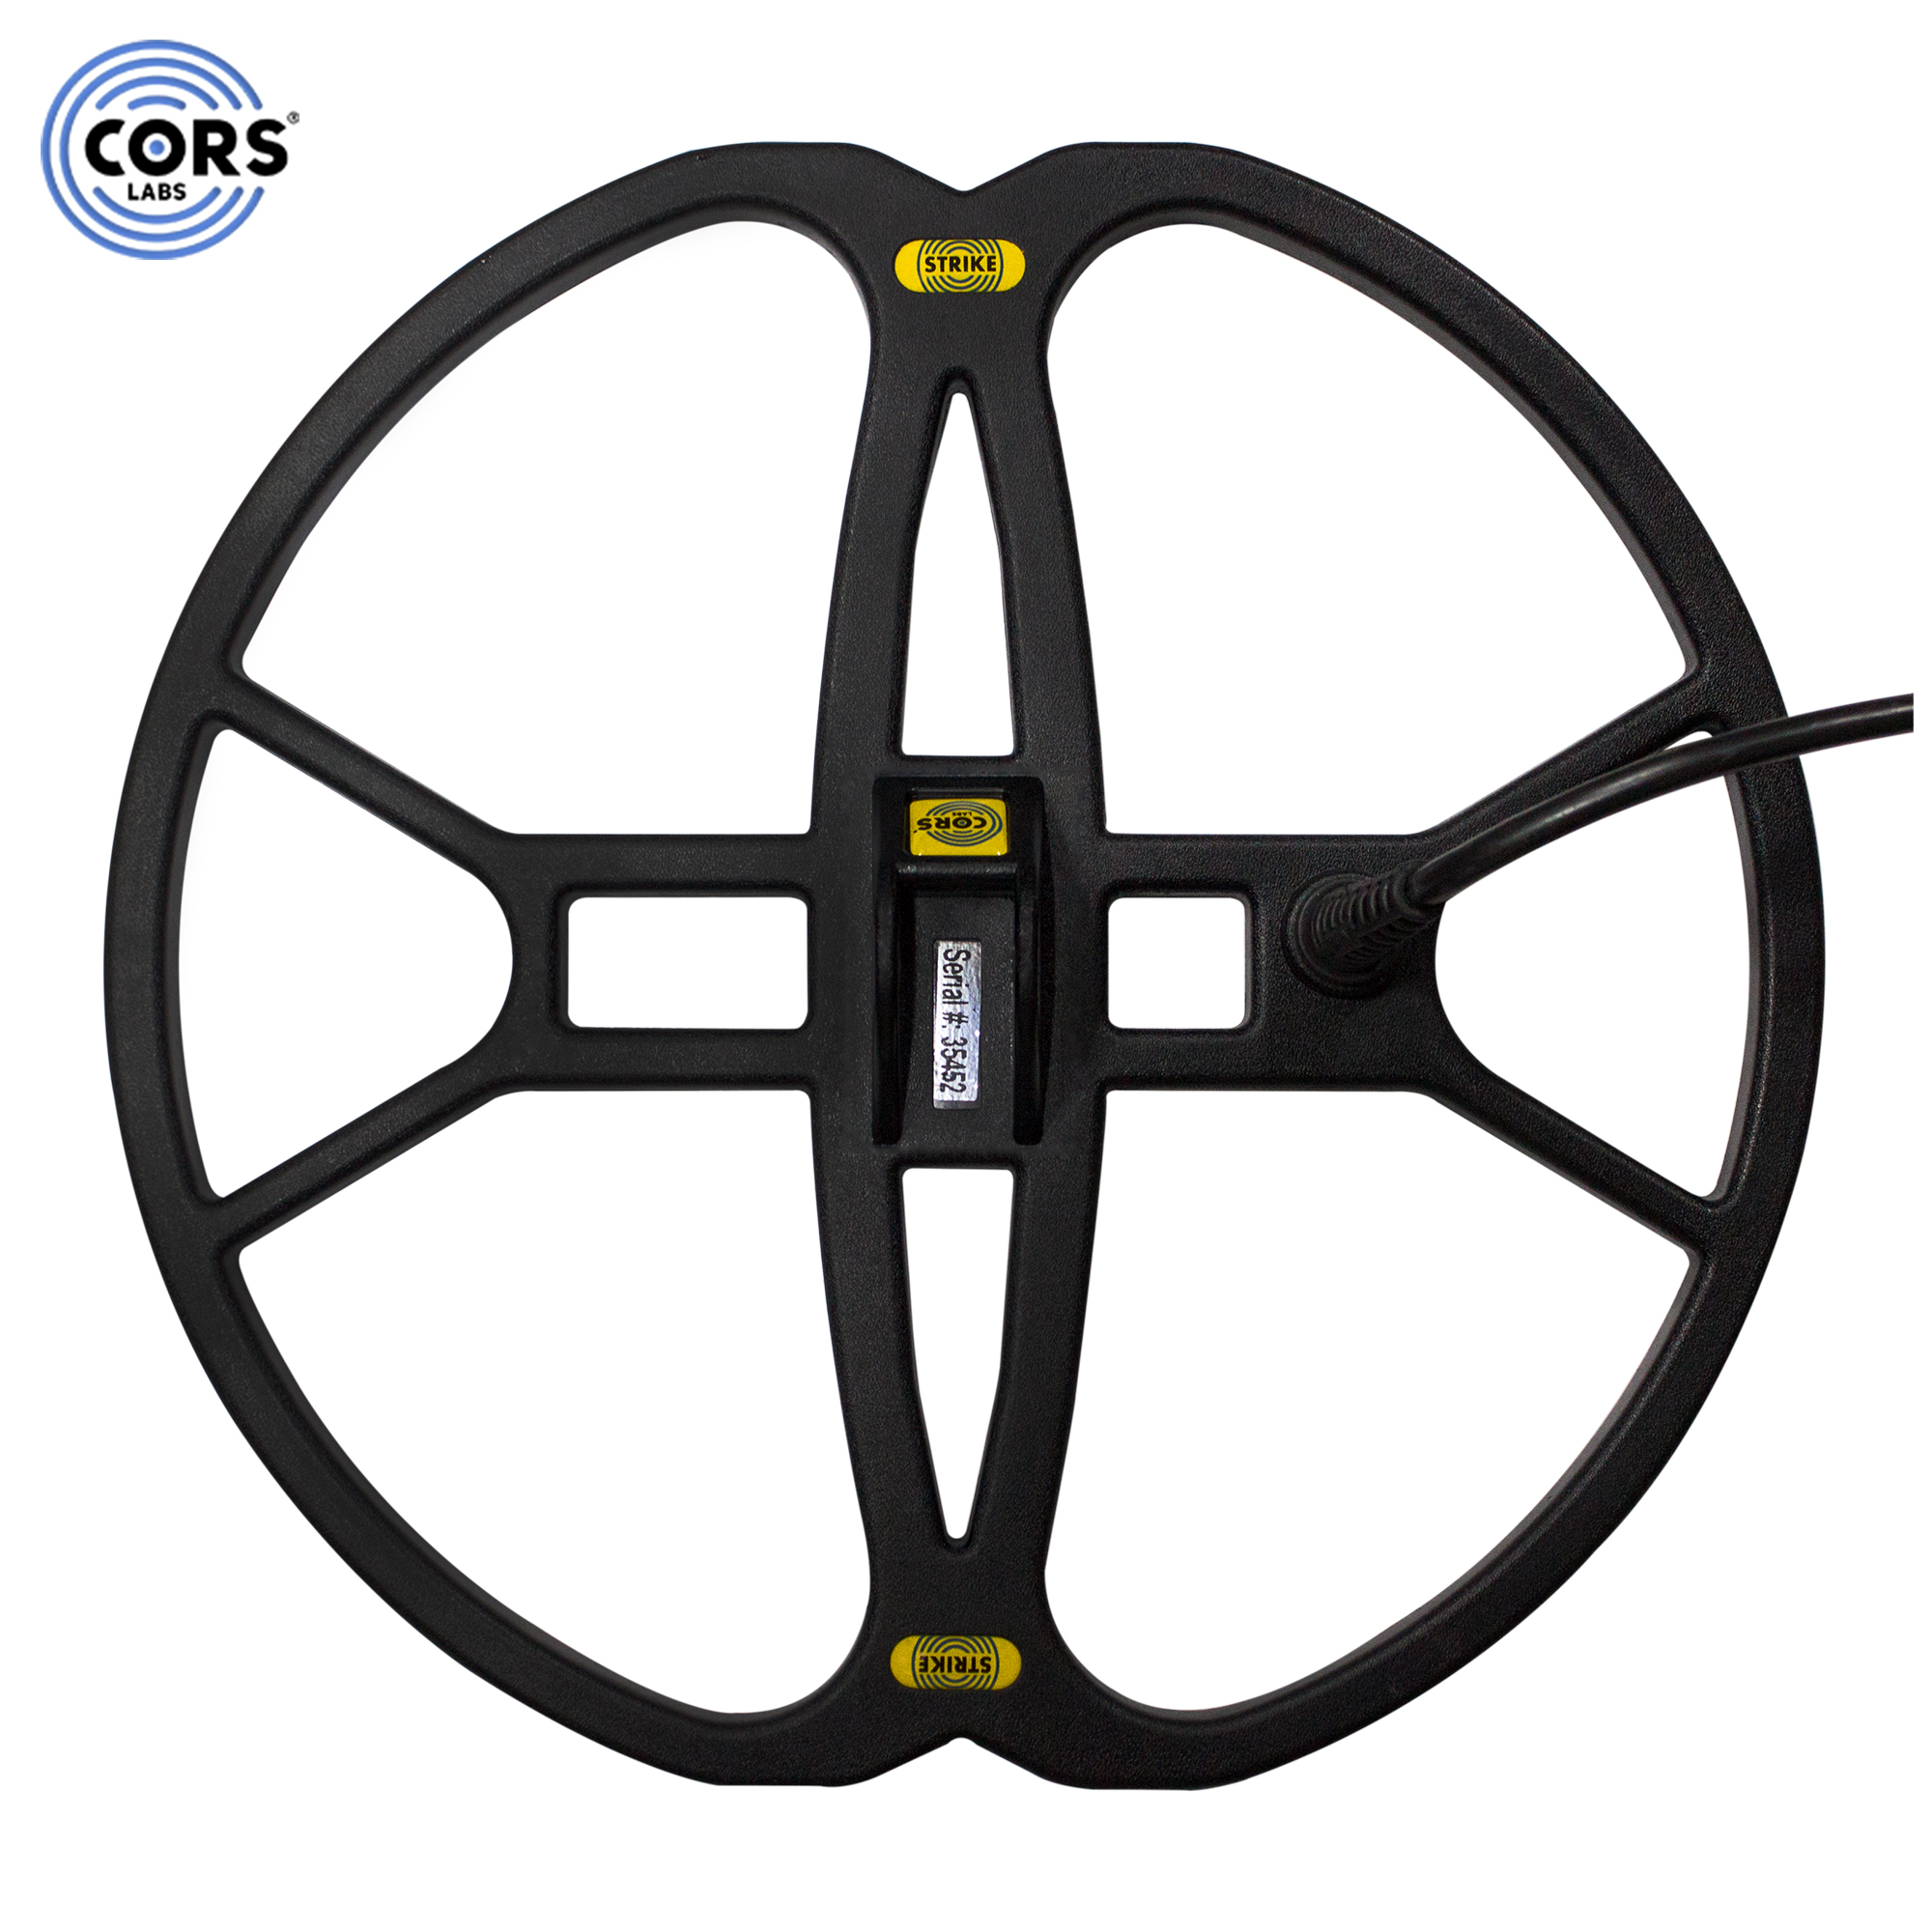 Cors Strike 12 X13 Dd Search Coil For Minelab Fbs Metal